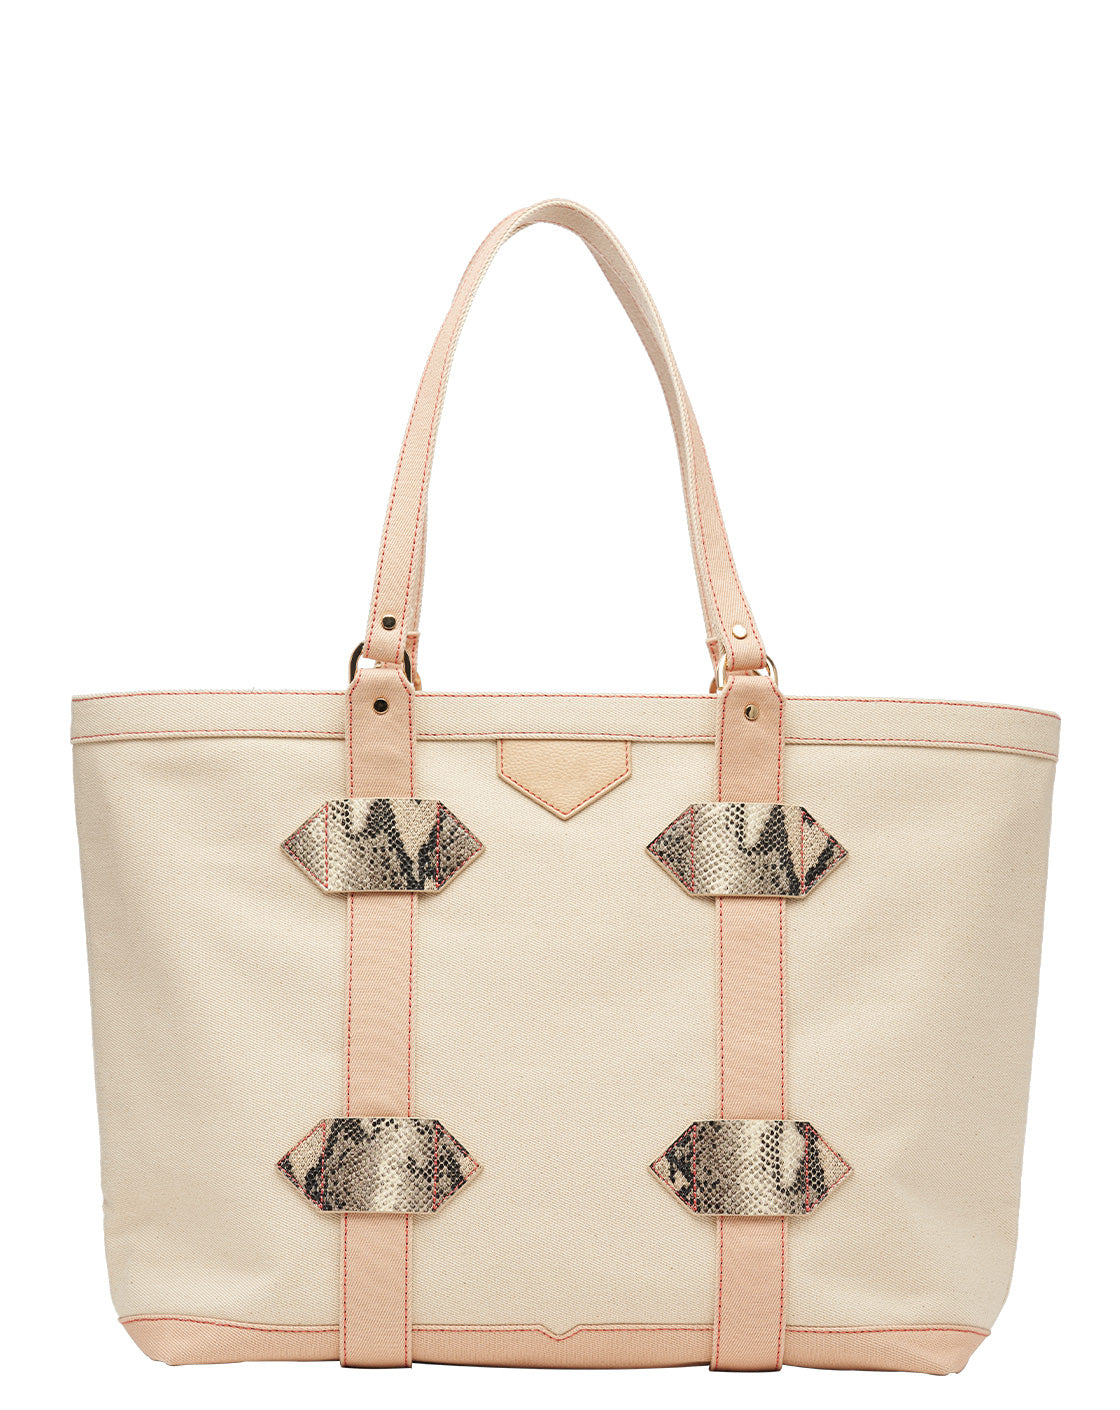 Out of Town Tote in Nude